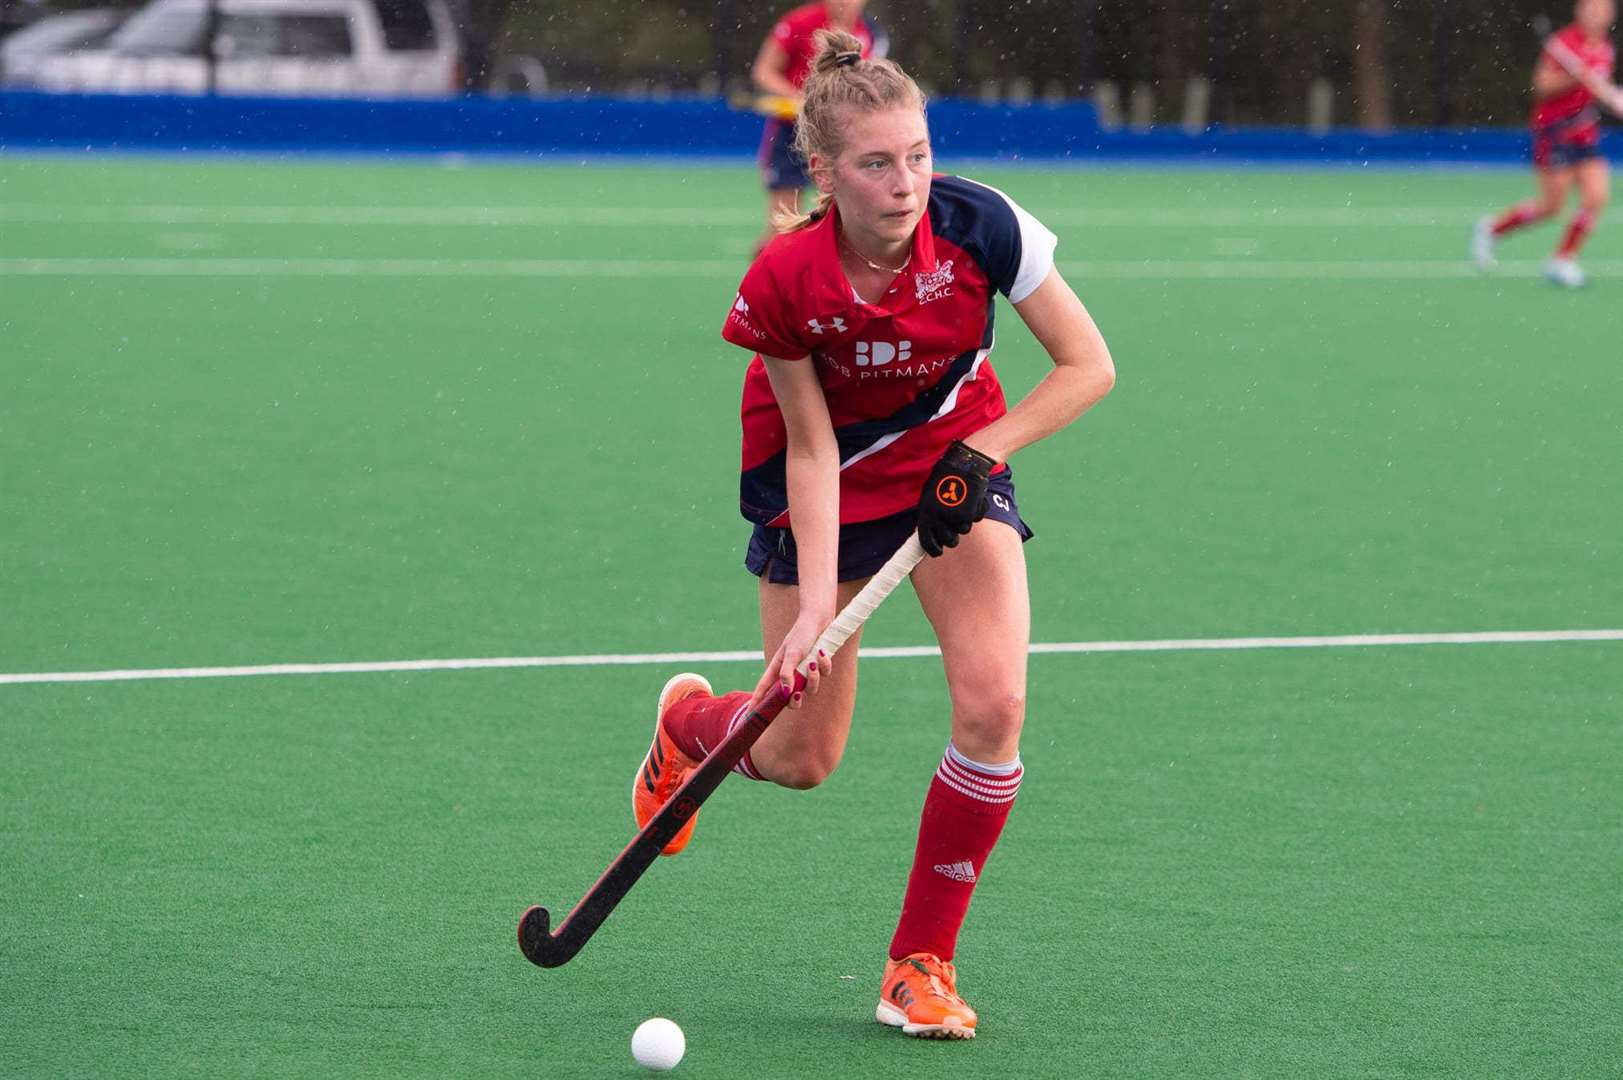 Cambridge City hockey player Kate Axford. Picture: Simon Webb (43137336)